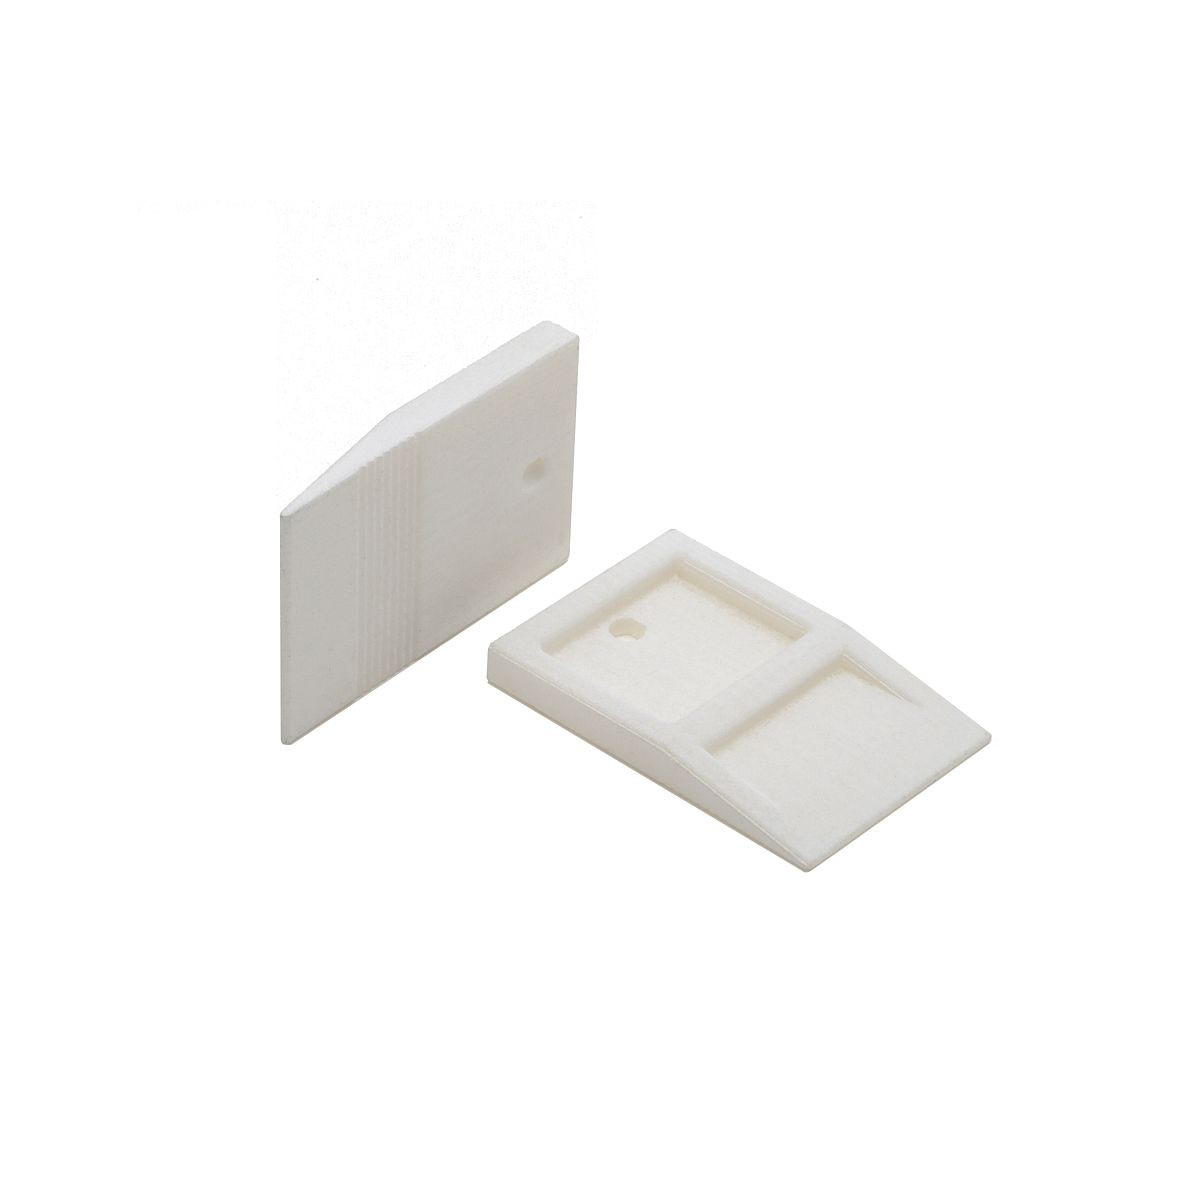 Tavy 1 8 White Wedge Spacers 100 Bag White Wedges Wedges The 100